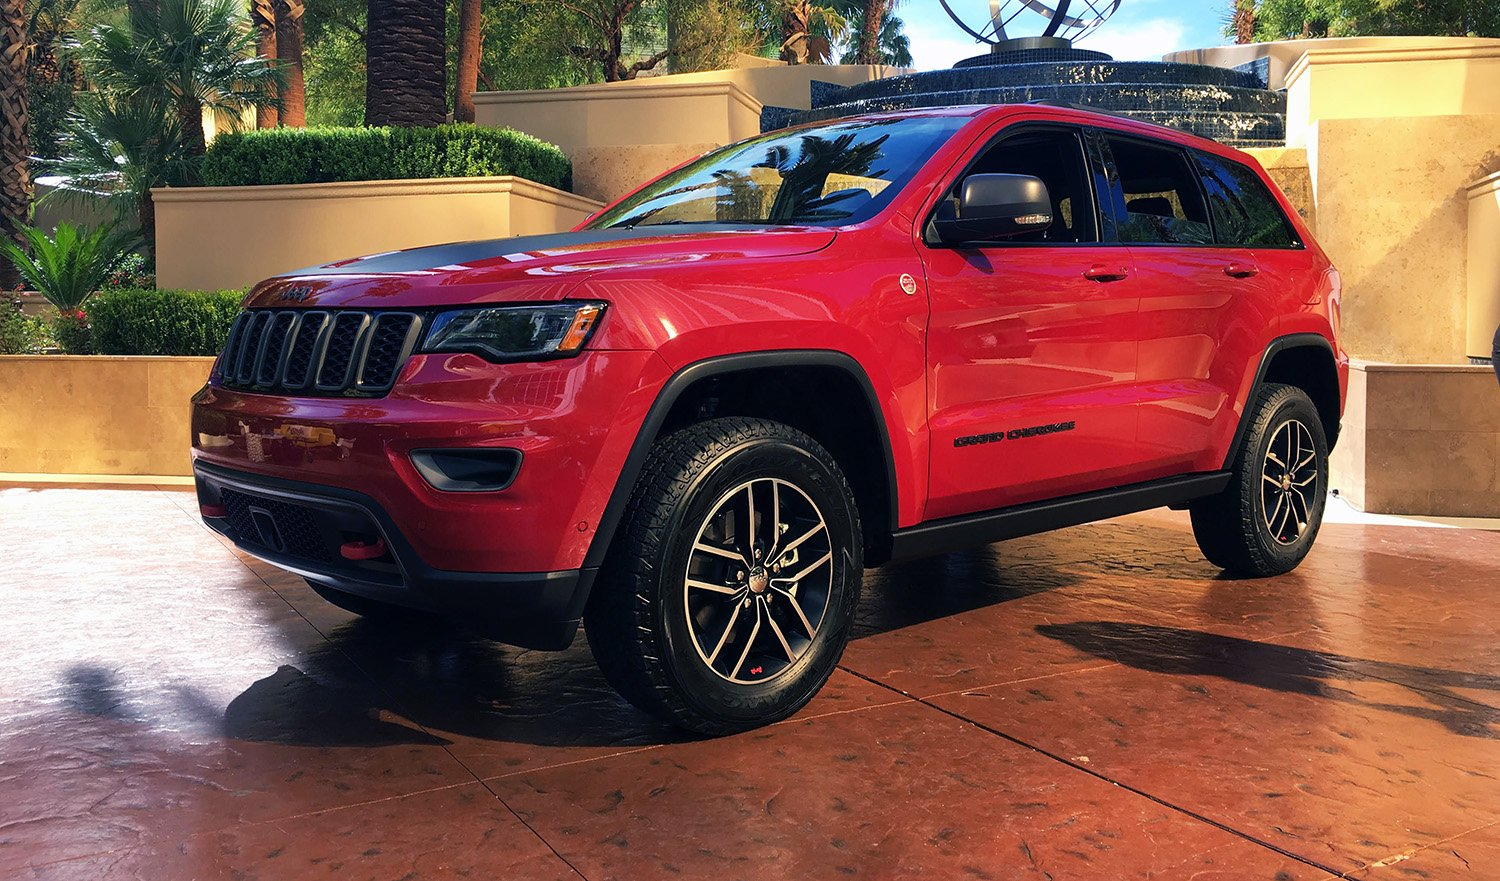 2017 Jeep Grand Cherokee Trailhawk Diesel Engine For